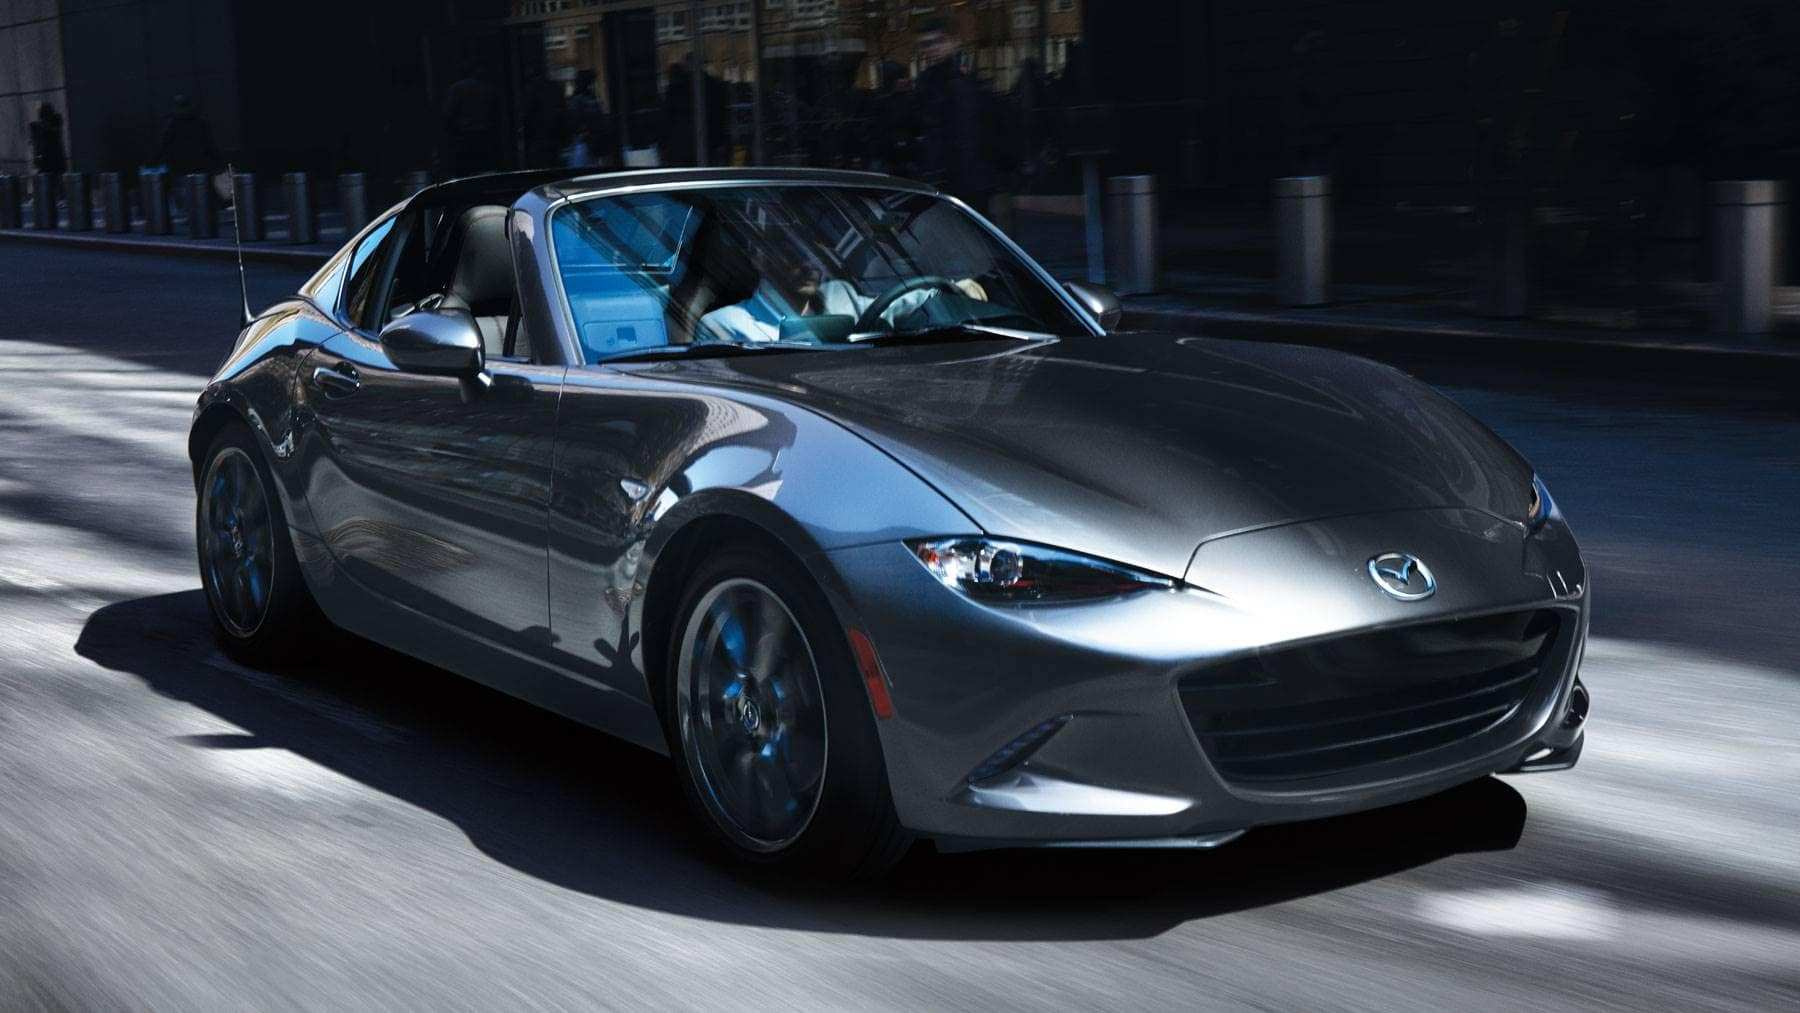 45 The Best 2019 Mazda MX 5 Miata Concept And Review